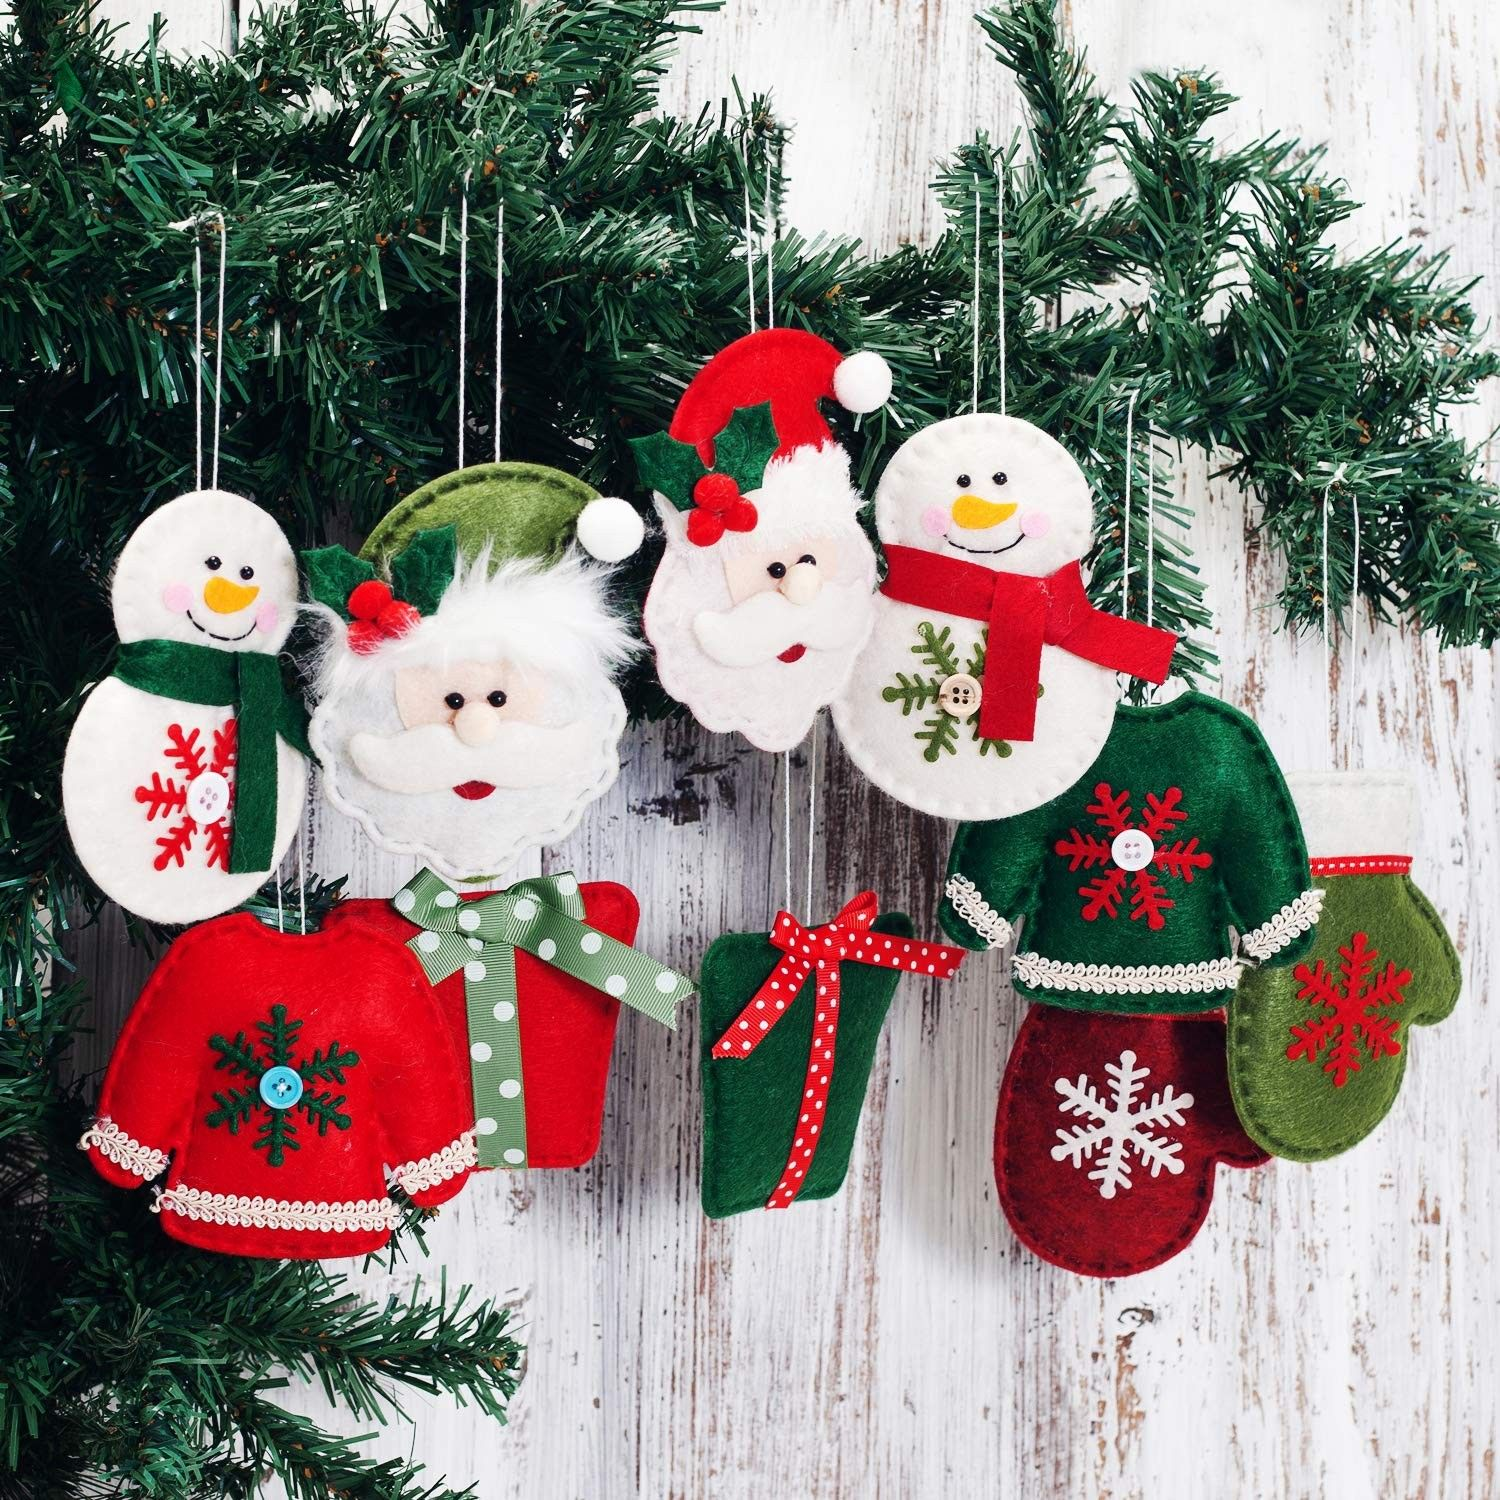 Christmas Tree Decorations Hanging Ornaments Santa Claus Gnome Snowman Pendants Home Decor Pack Of 10 Christmas Tree Decor C118kaiztwe Christmas Tree Decorations Tree Decorations Skinny Christmas Tree Decorations